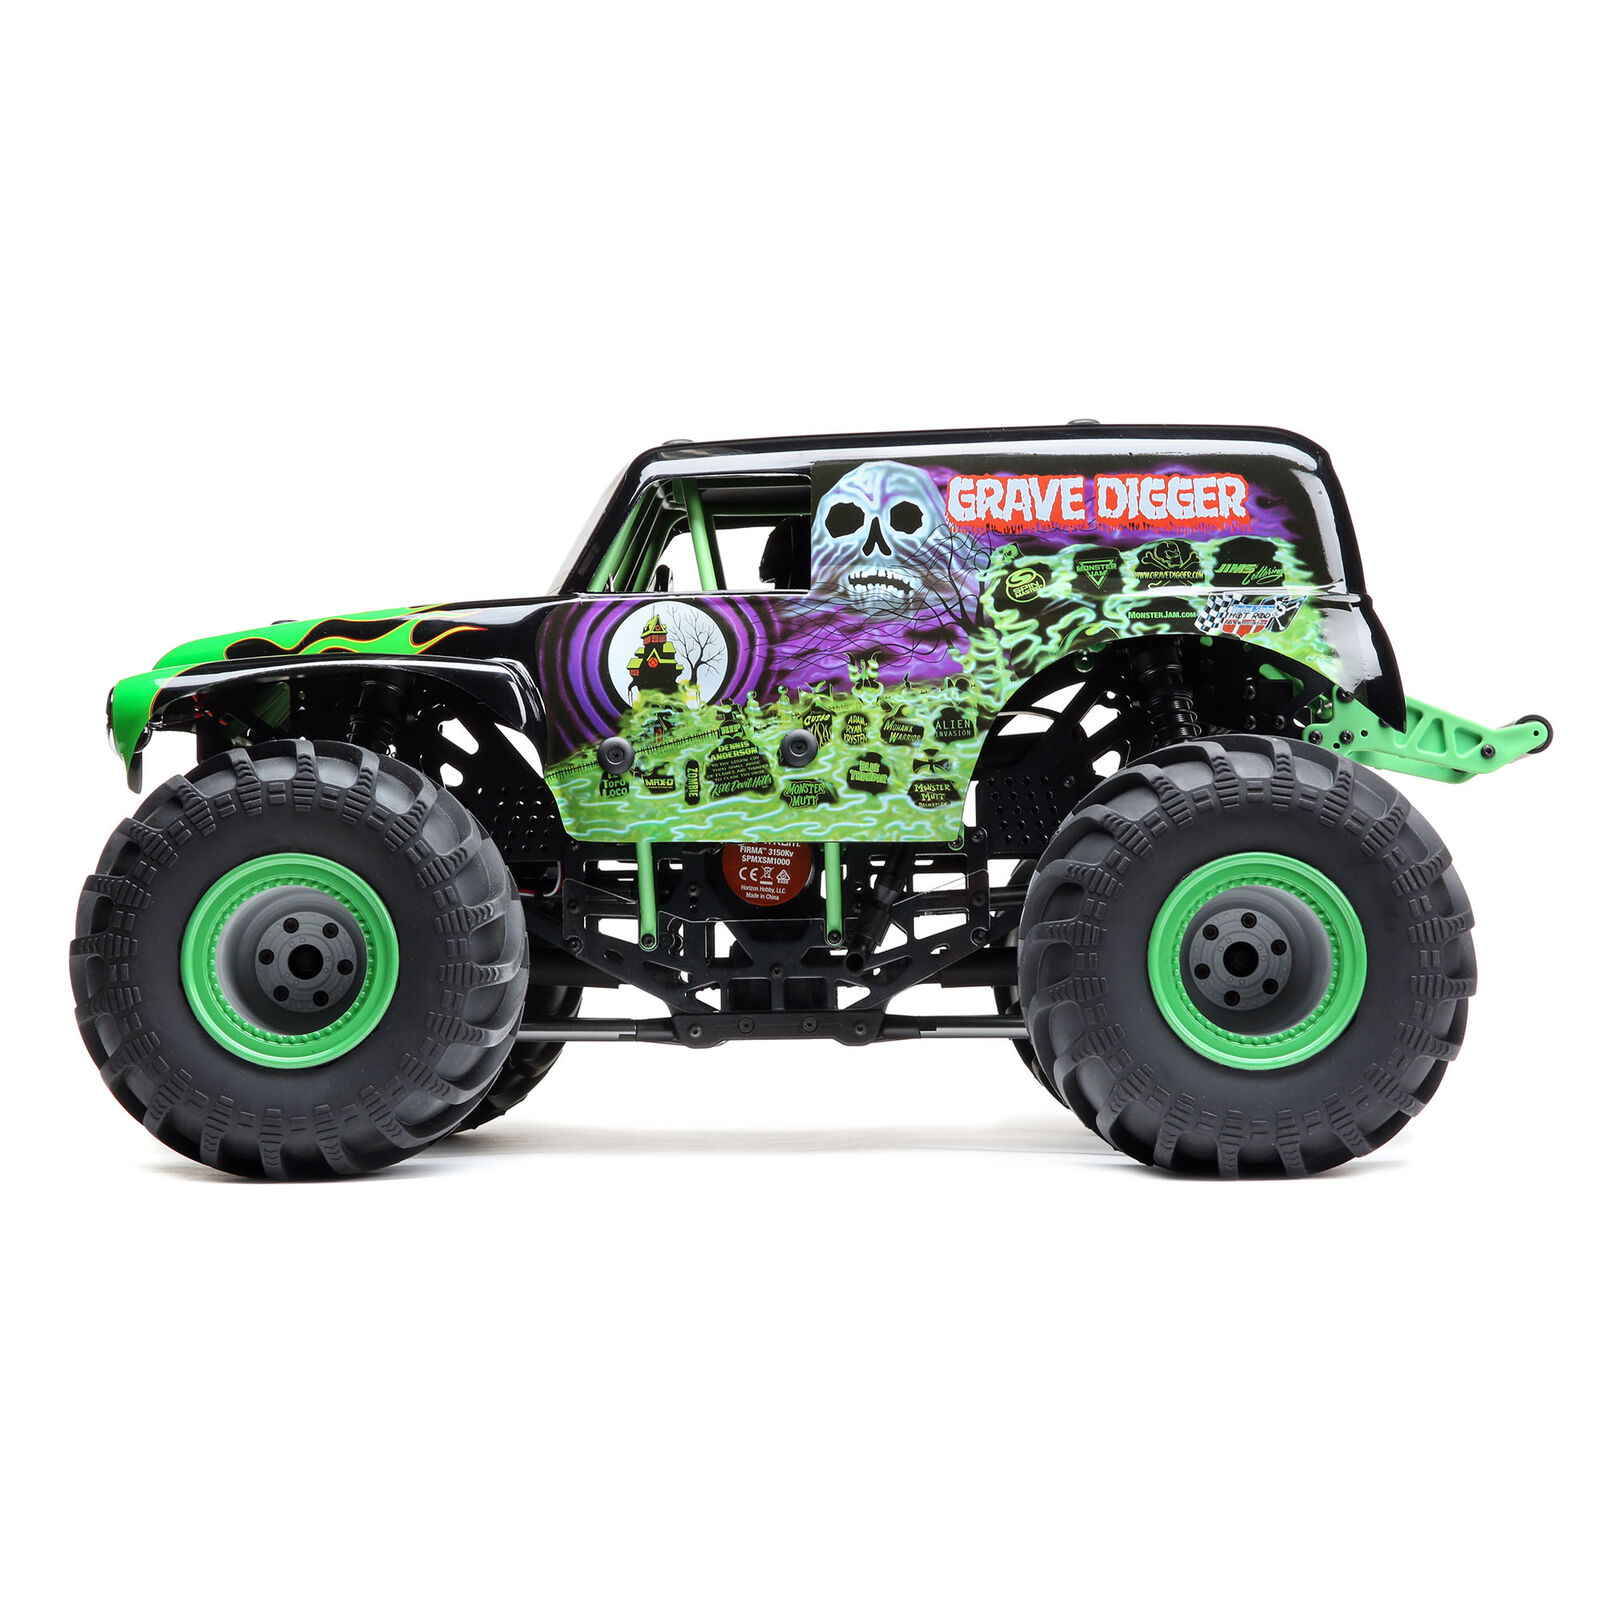 LMT 4WD Solid Axle Monster Truck RTR, Grave Digger